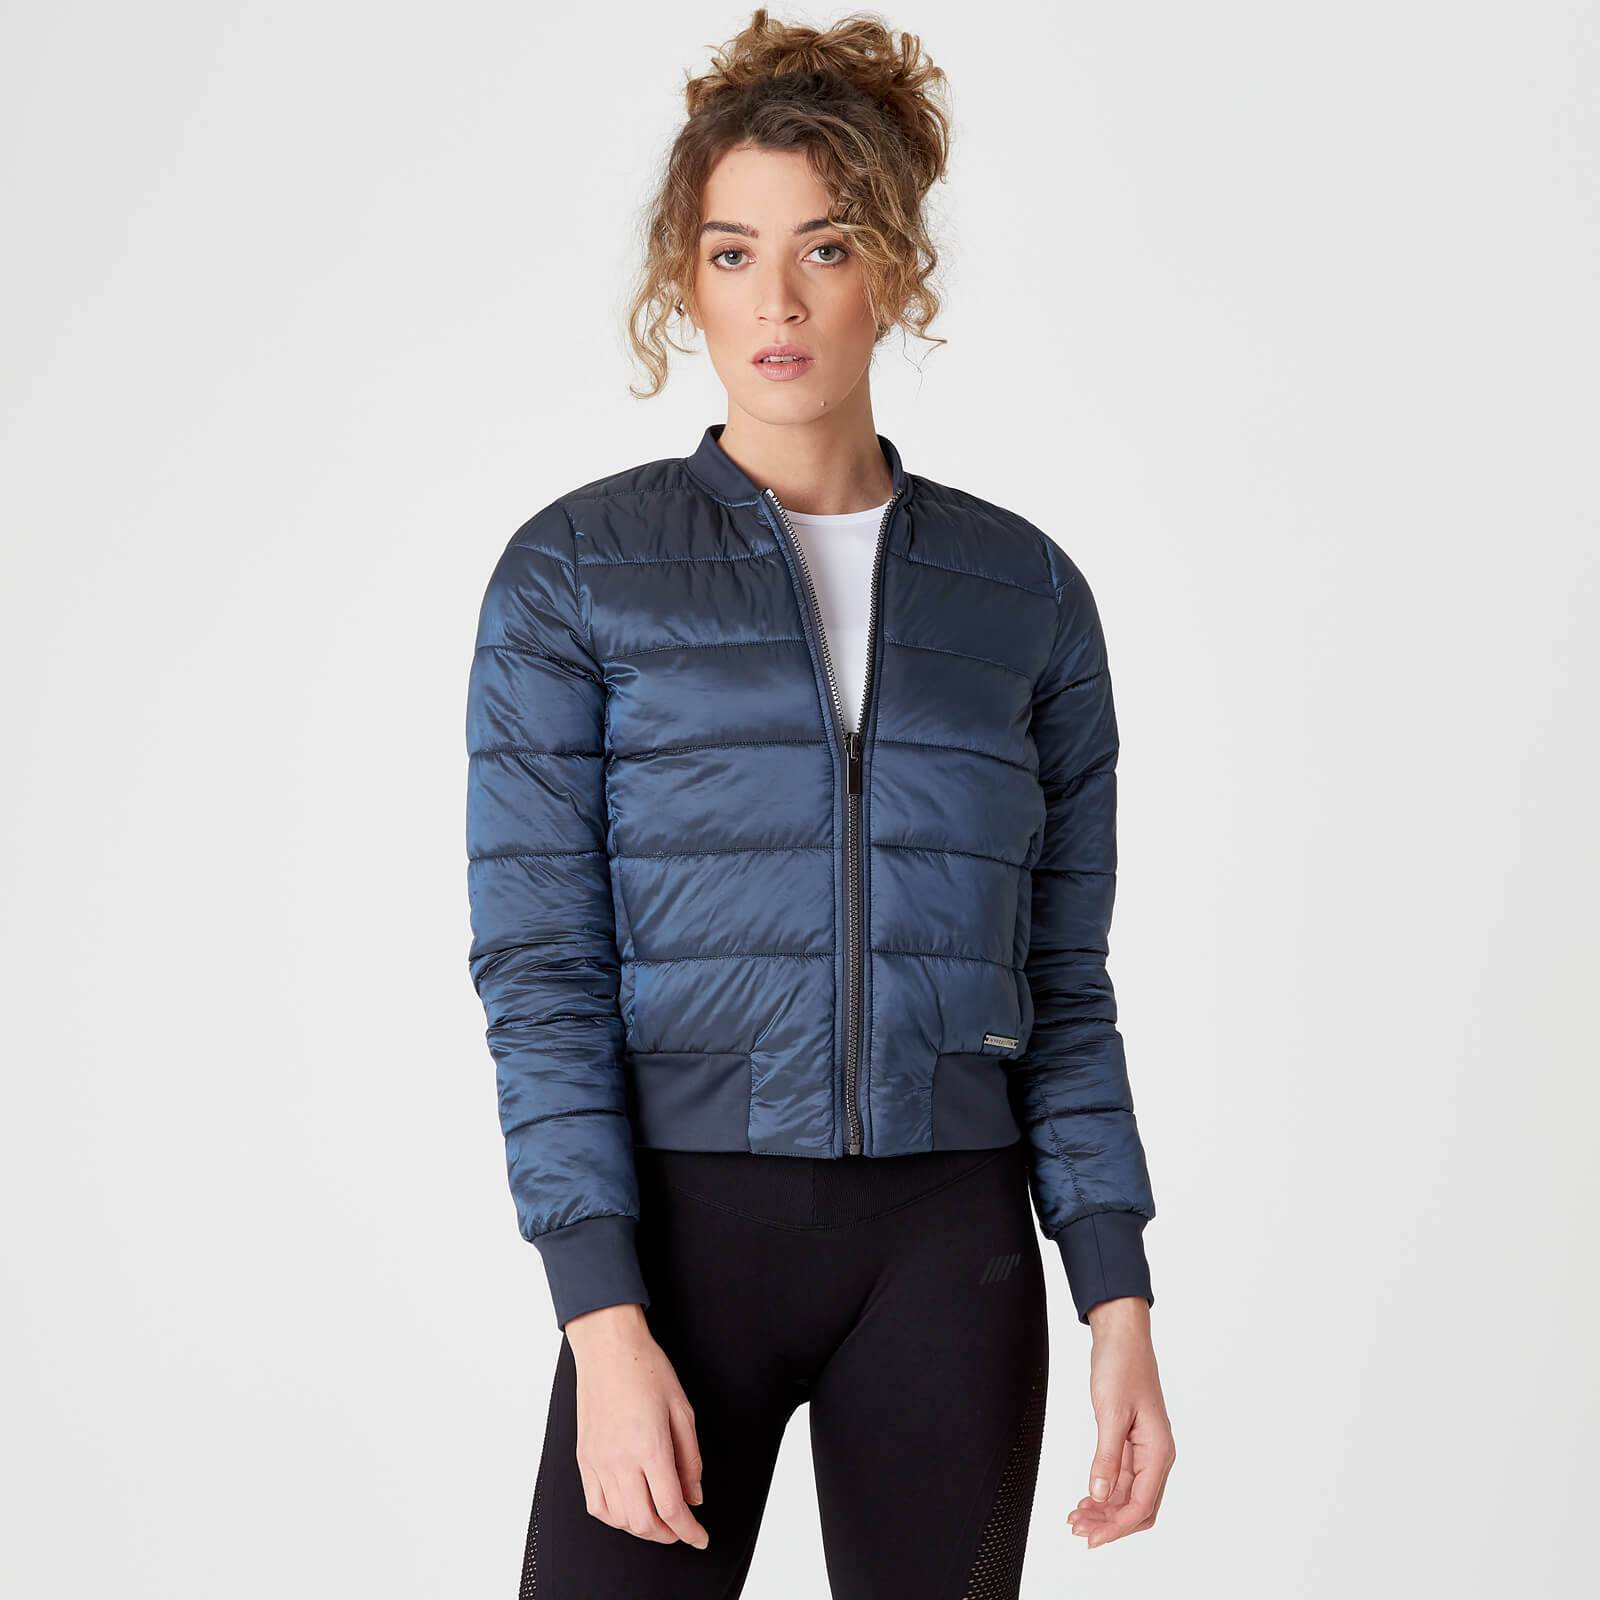 Myprotein MP Reversible Bomber Jacket - Dark Indigo - M